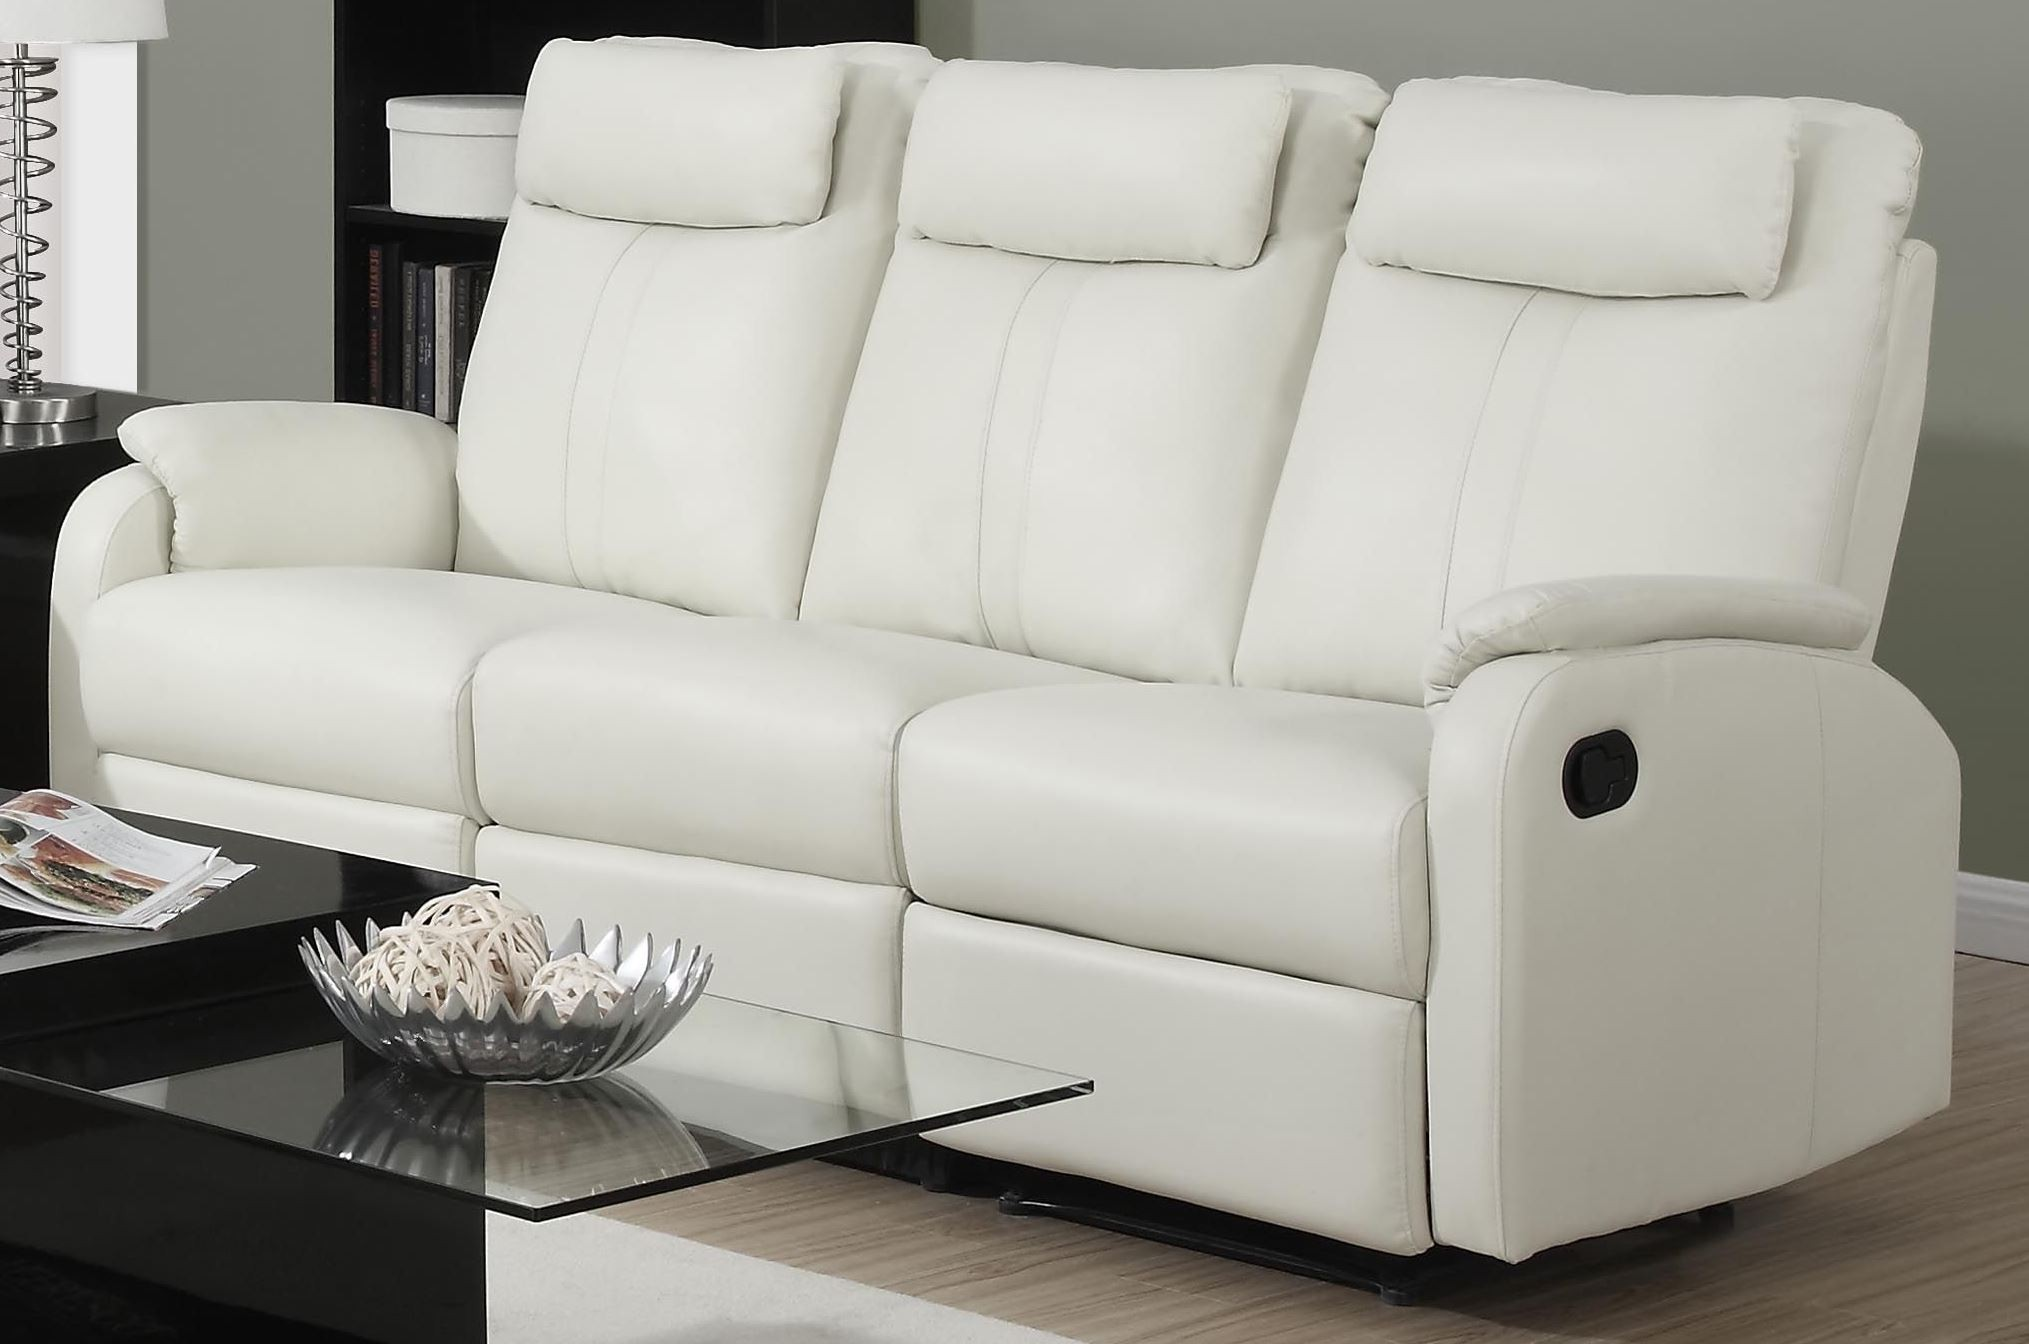 81iv 3 Ivory Bonded Leather Reclining Sofa From Monarch Coleman Furniture